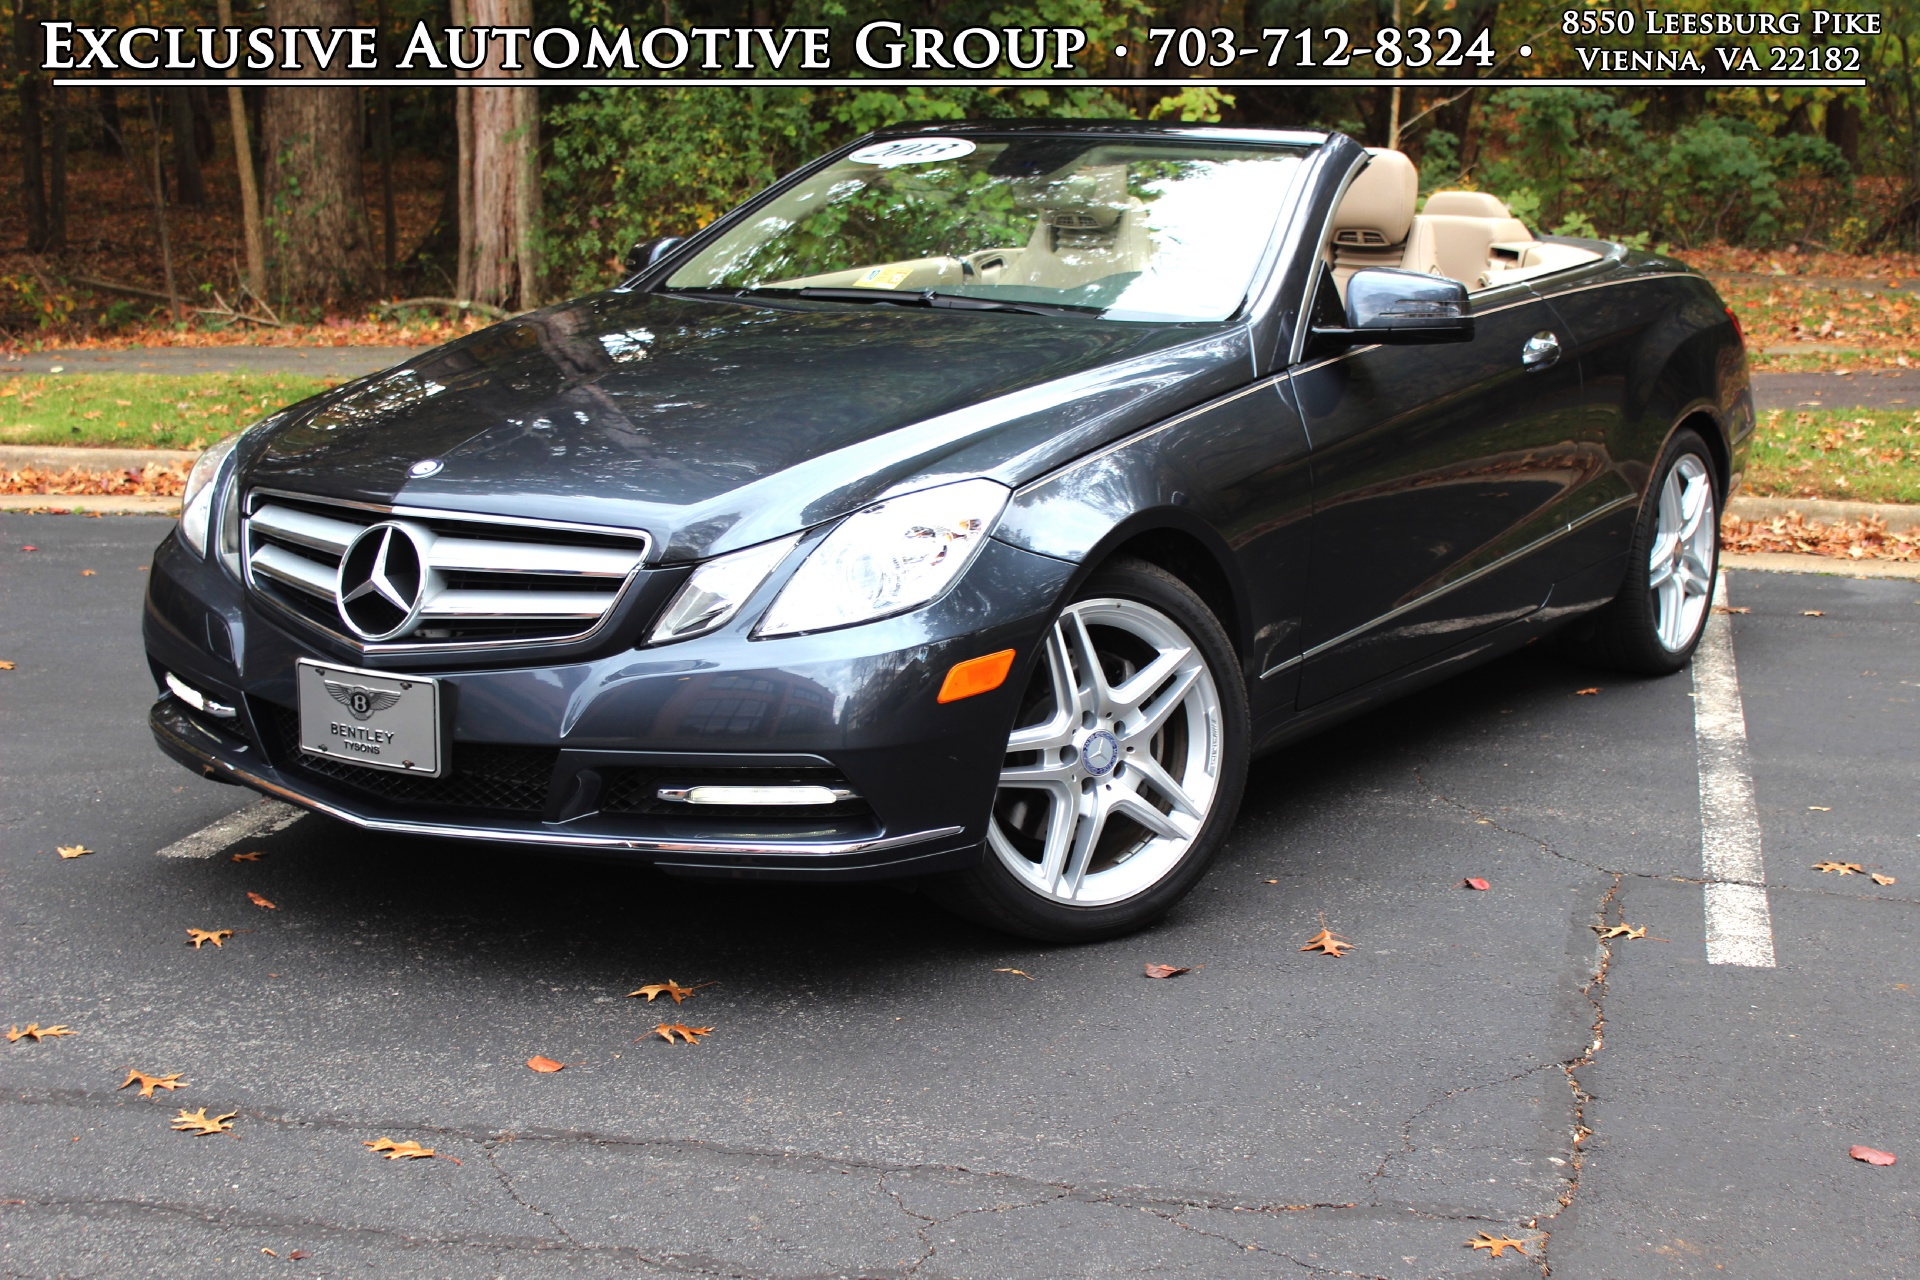 2013 mercedes benz e350 cabriolet stock p208908 for sale for Nearby mercedes benz dealerships